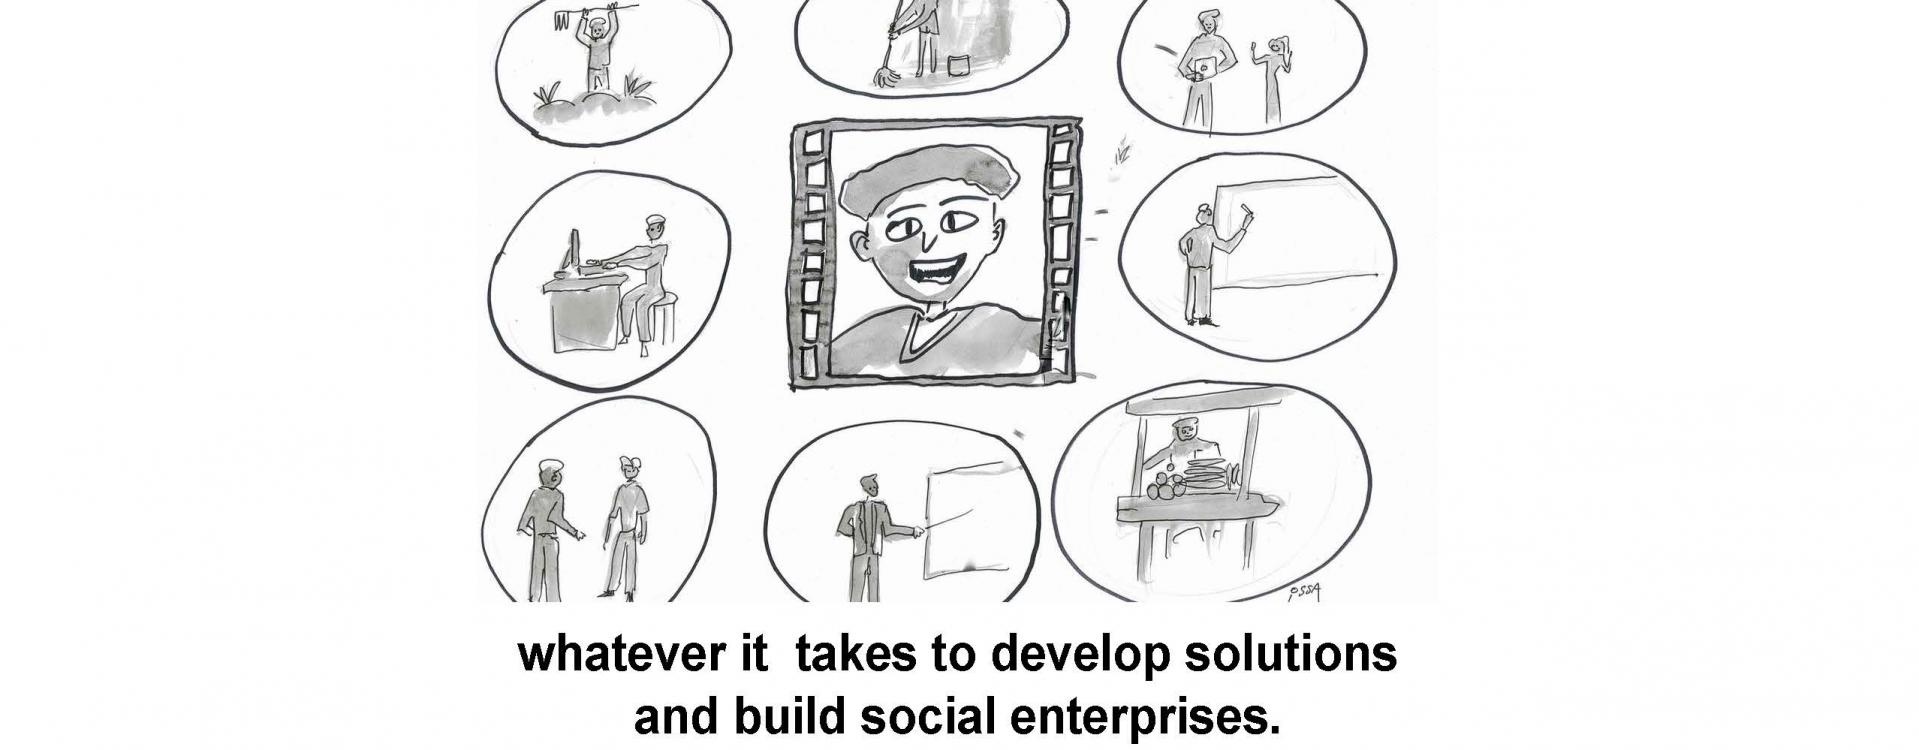 whatever it takes to develop solutions and build social enterprises.